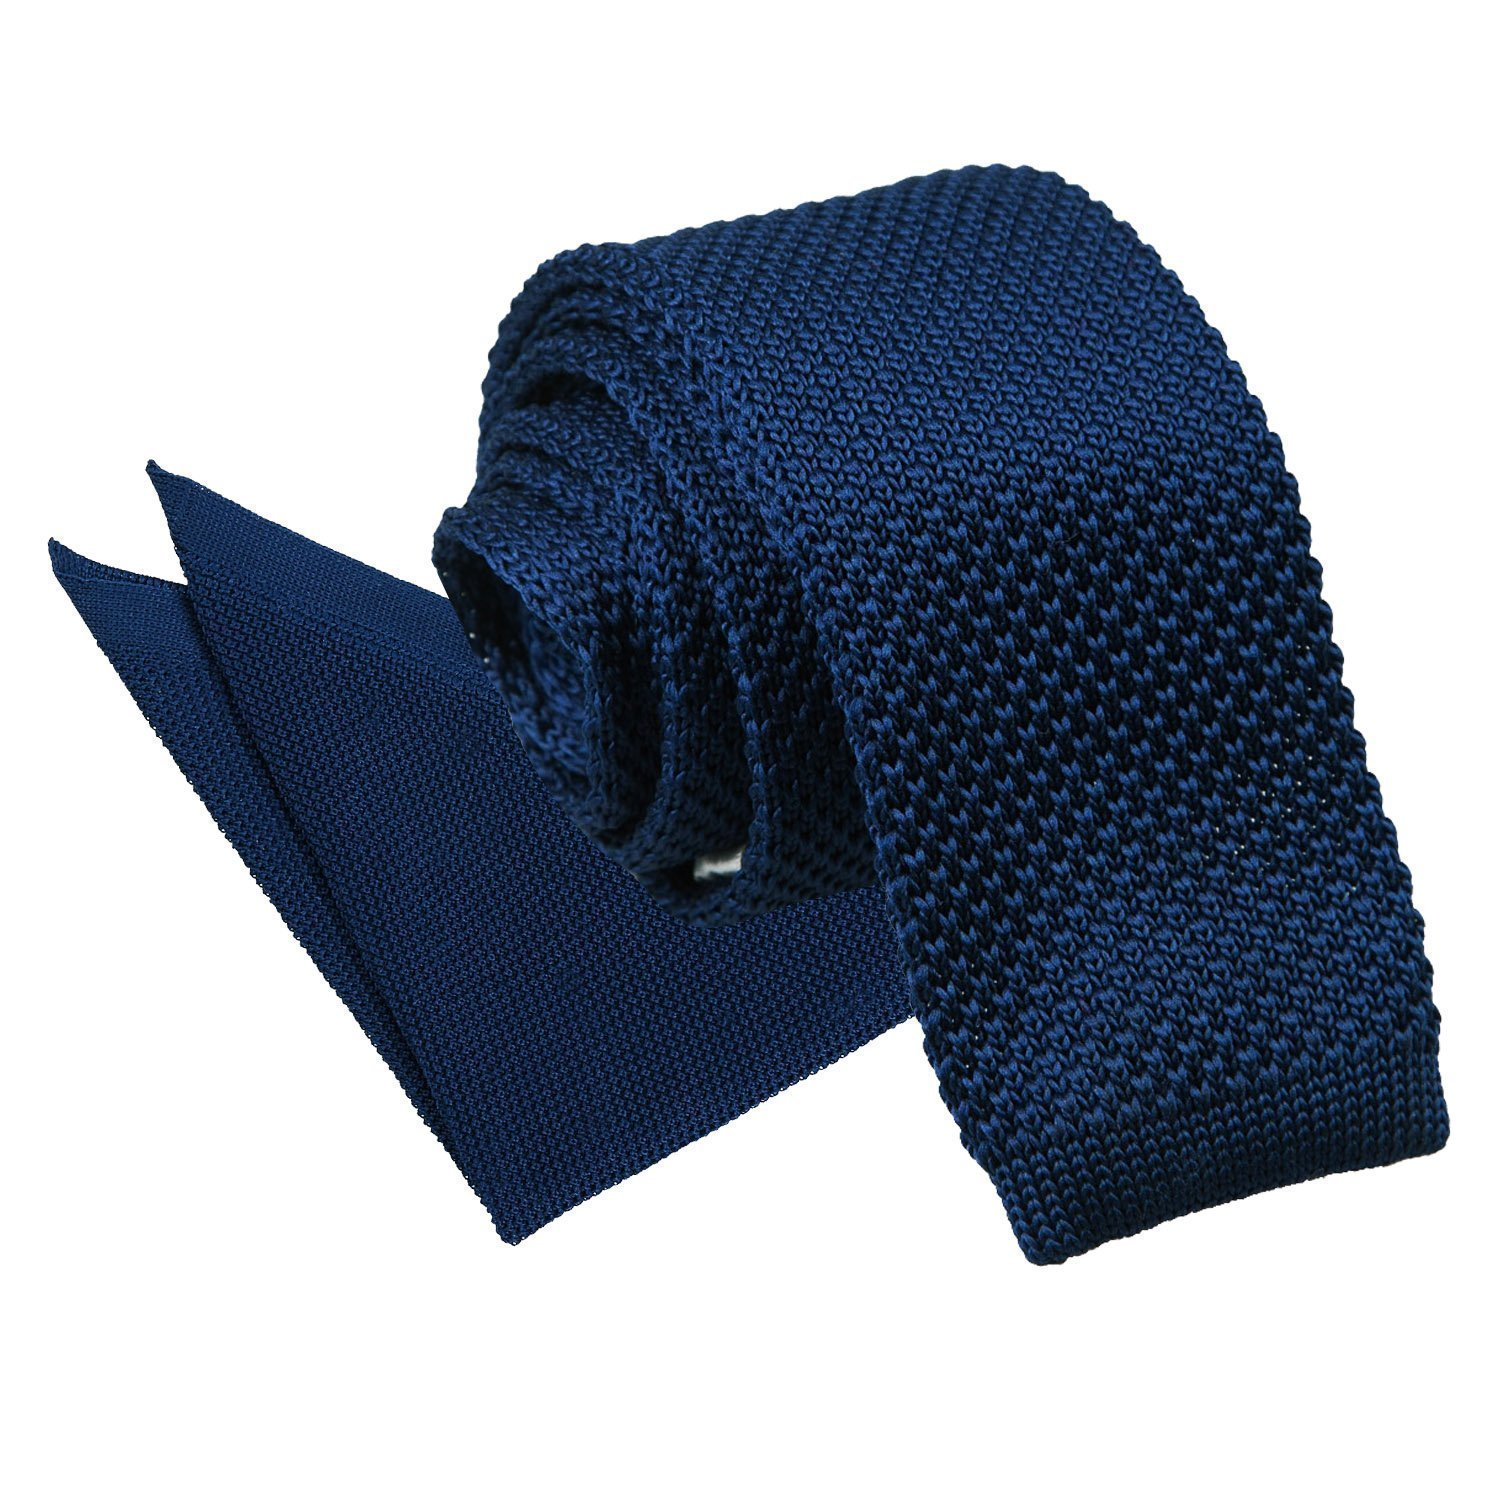 Navy Blue Mens Bow Tie Knit Knitted Plain Solid Pretied Necktie by DQT